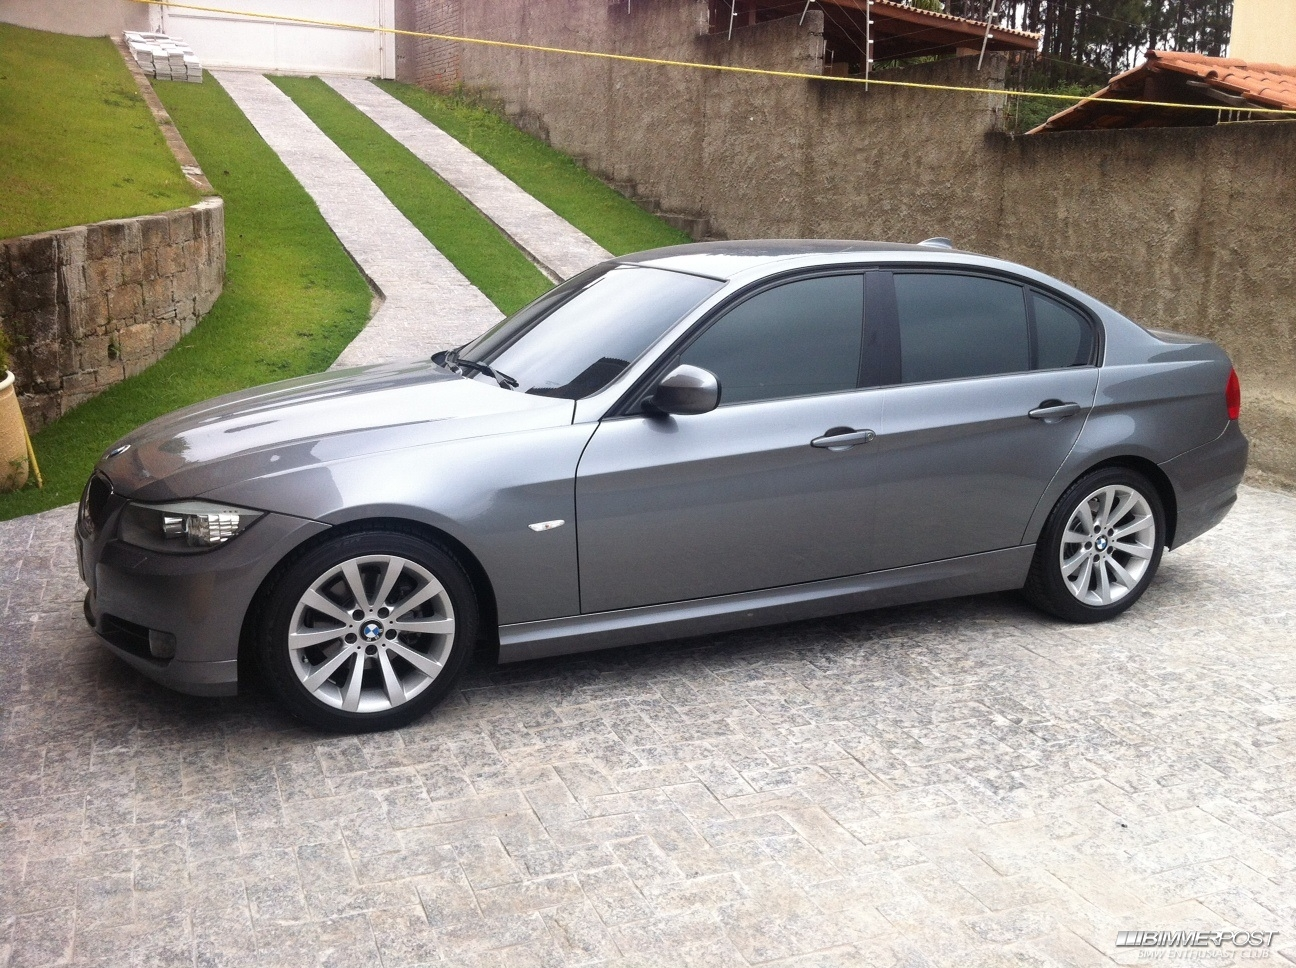 Alex J S 2010 Bmw 325i Bimmerpost Garage